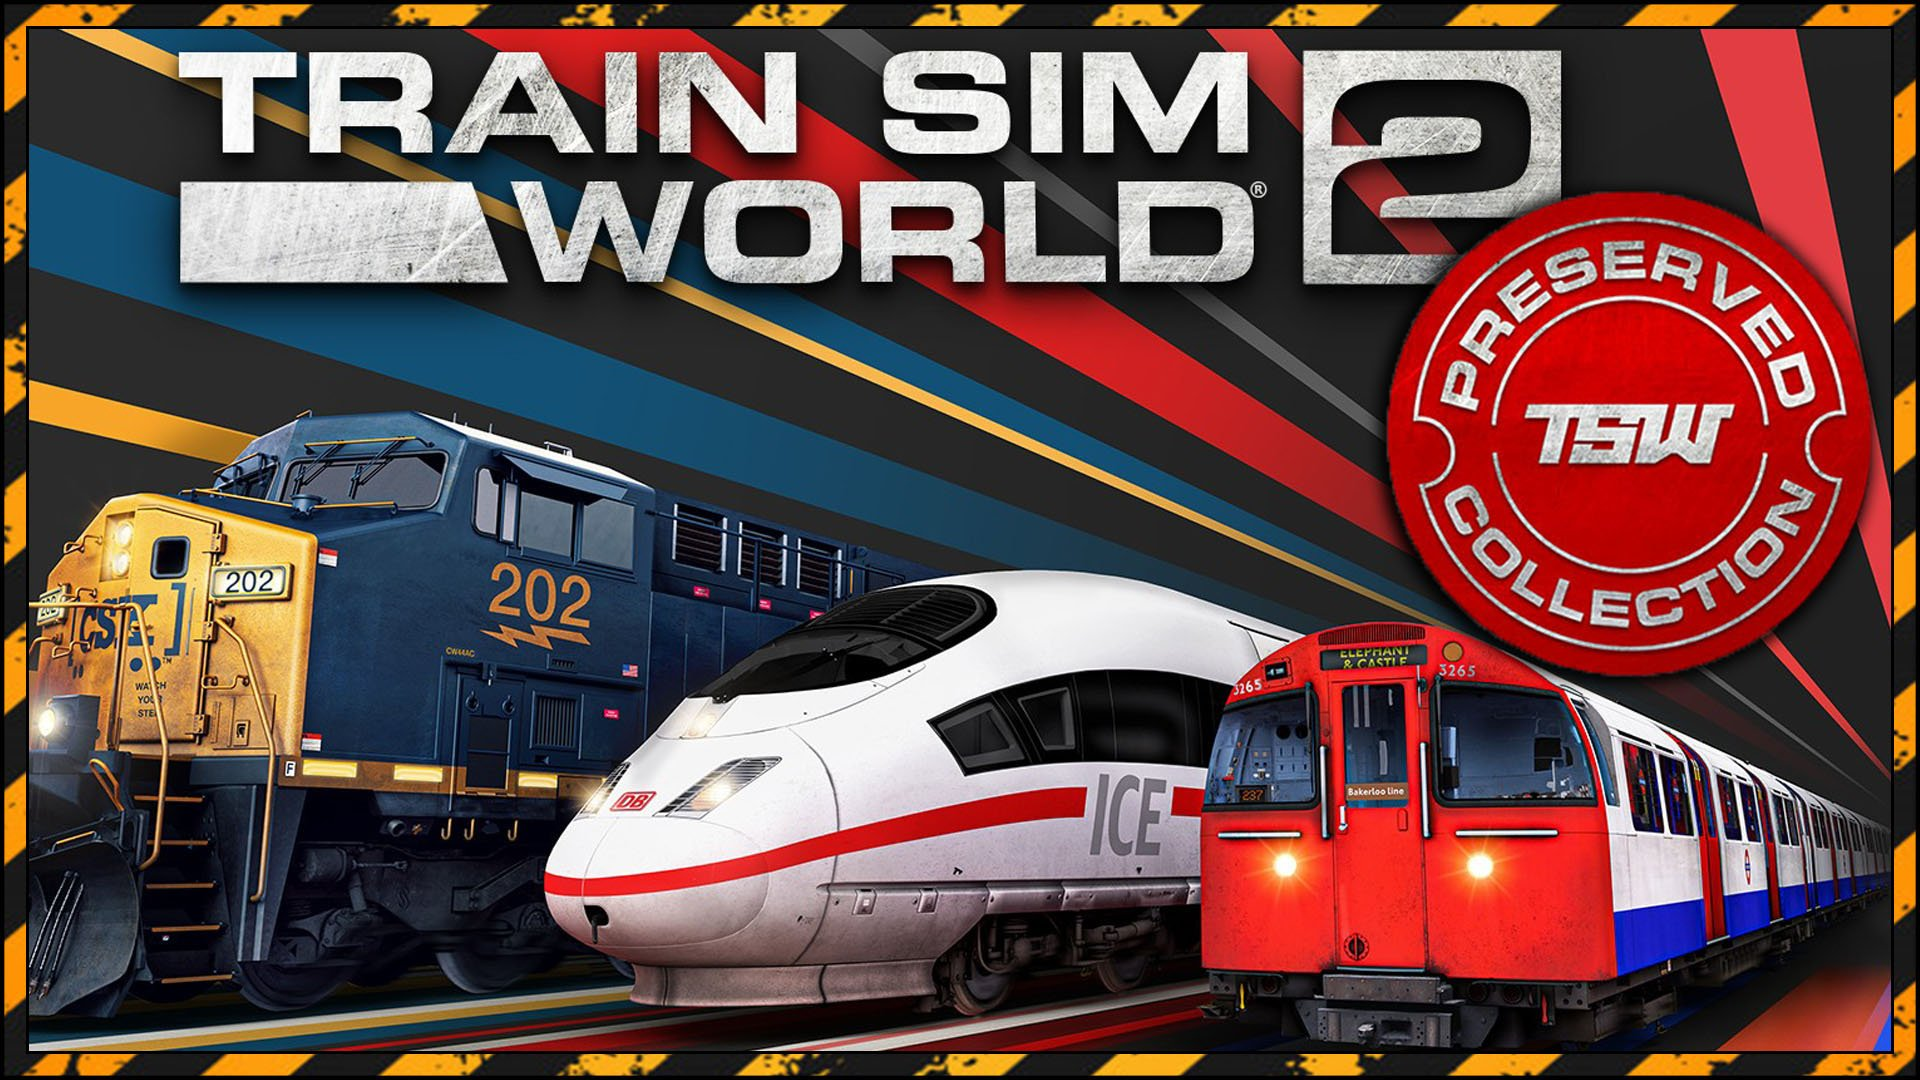 Train Sim World 2 Preserved Collection Fi3